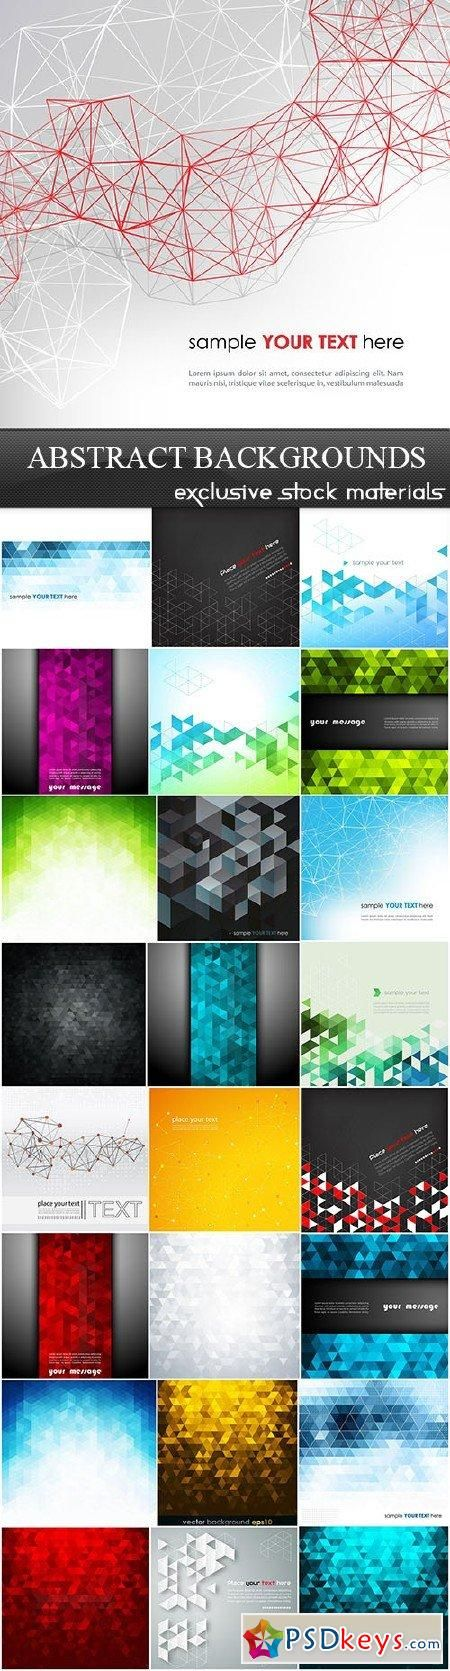 Abstract Backgrounds Vector Set 25xEPS 296 best